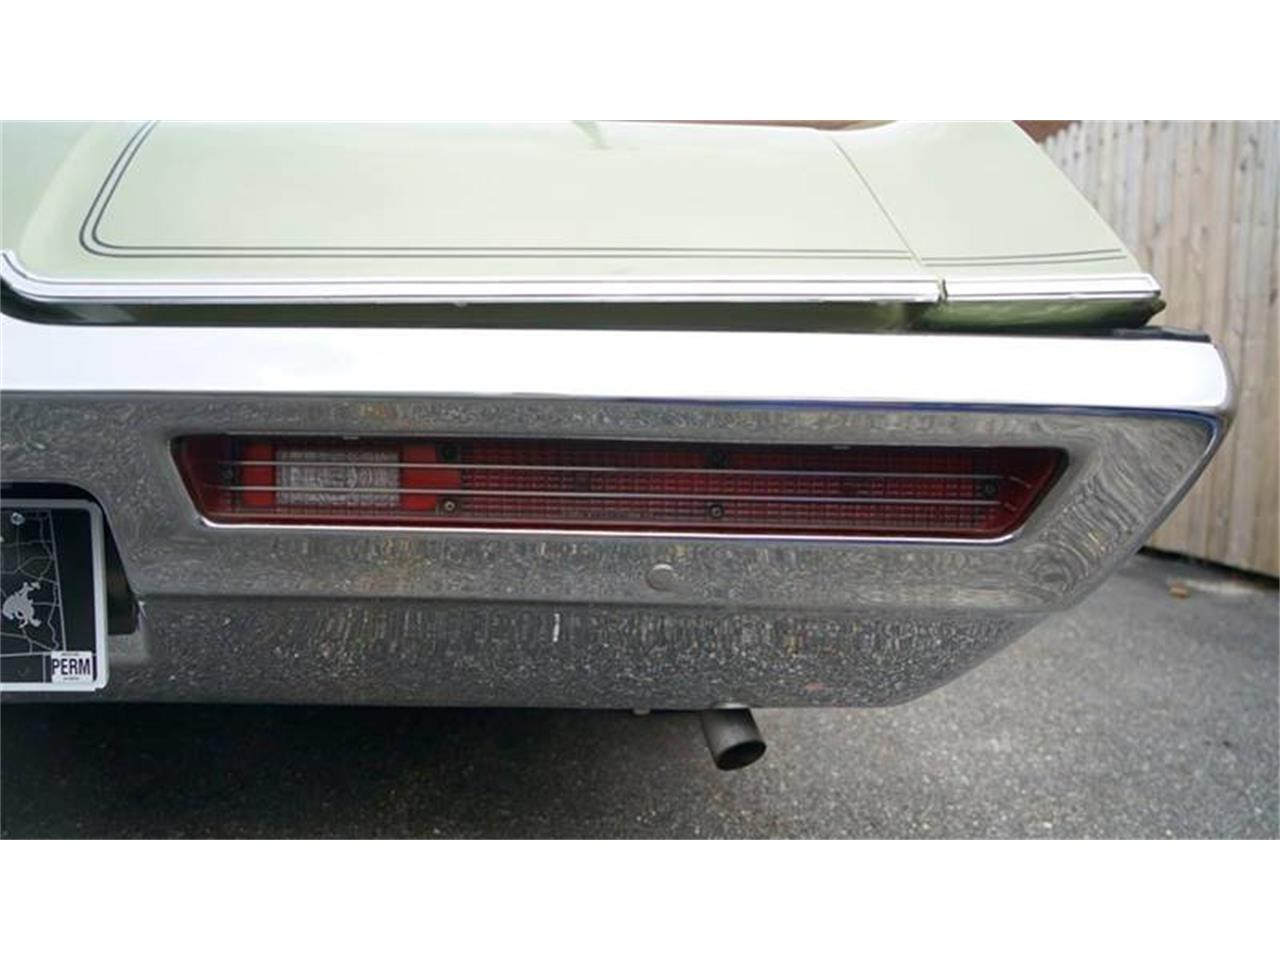 Large Picture of Classic 1969 Gran Sport located in New York - $24,500.00 Offered by Fiore Motor Classics - OVOC